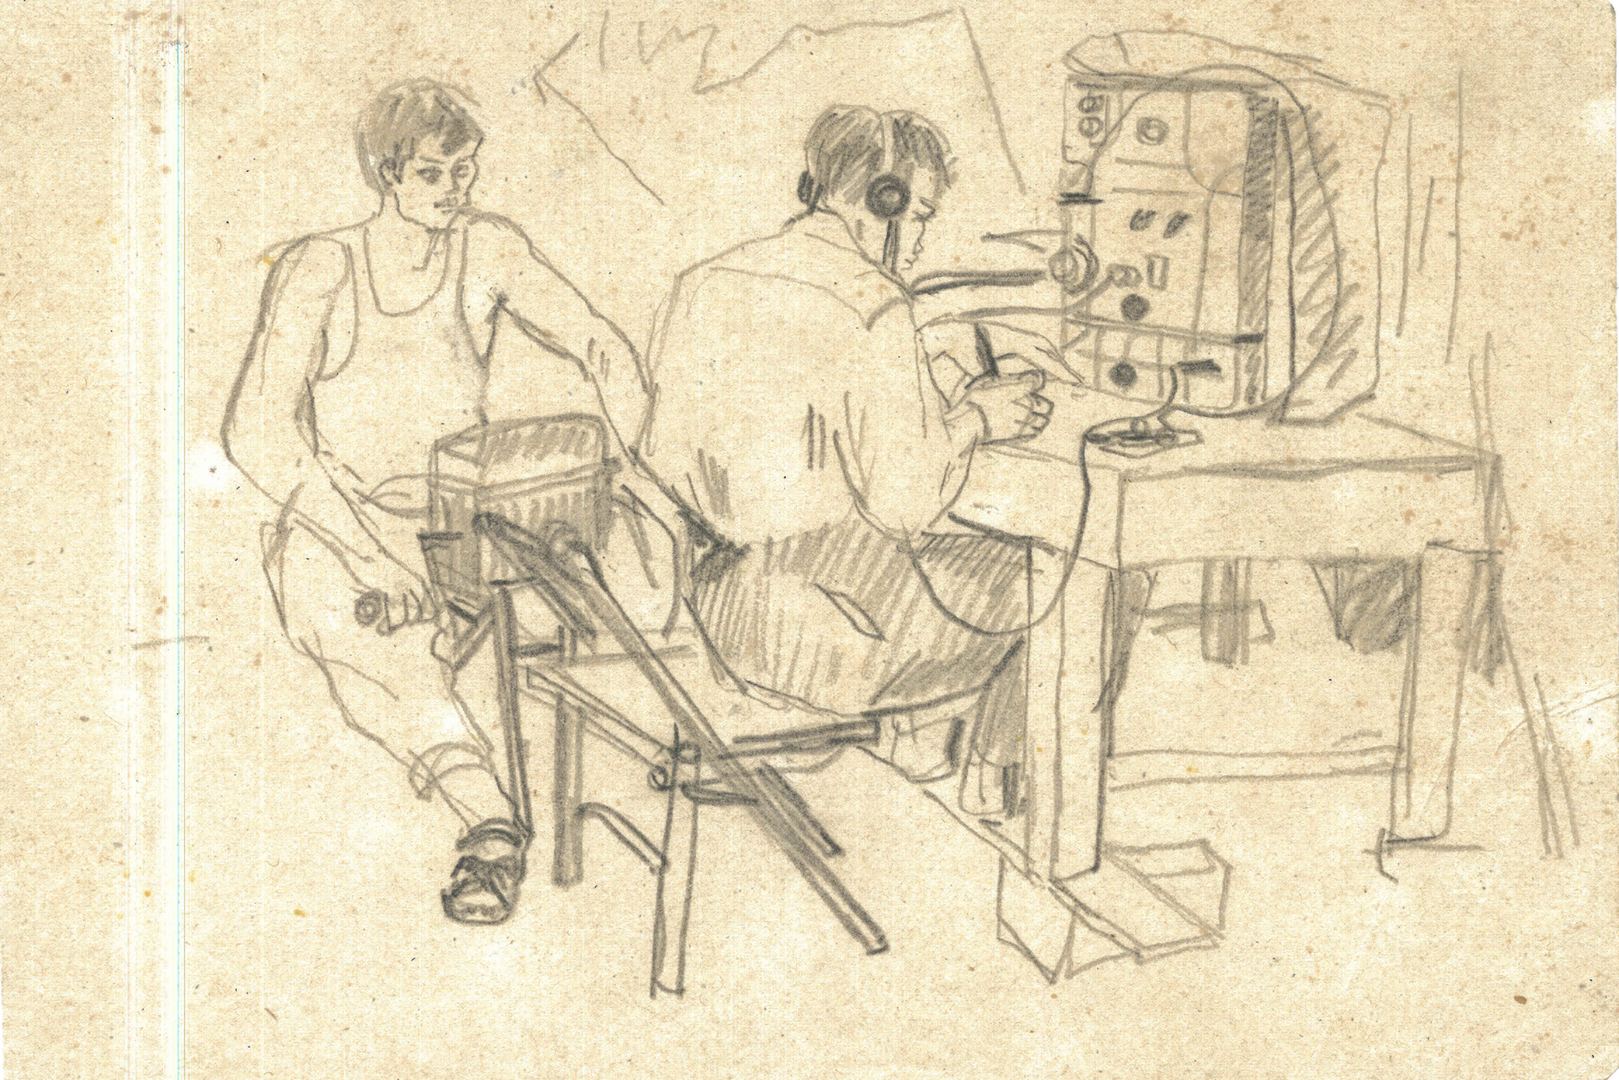 Copy_of_1967_Telephone_Operator_on_Trườn